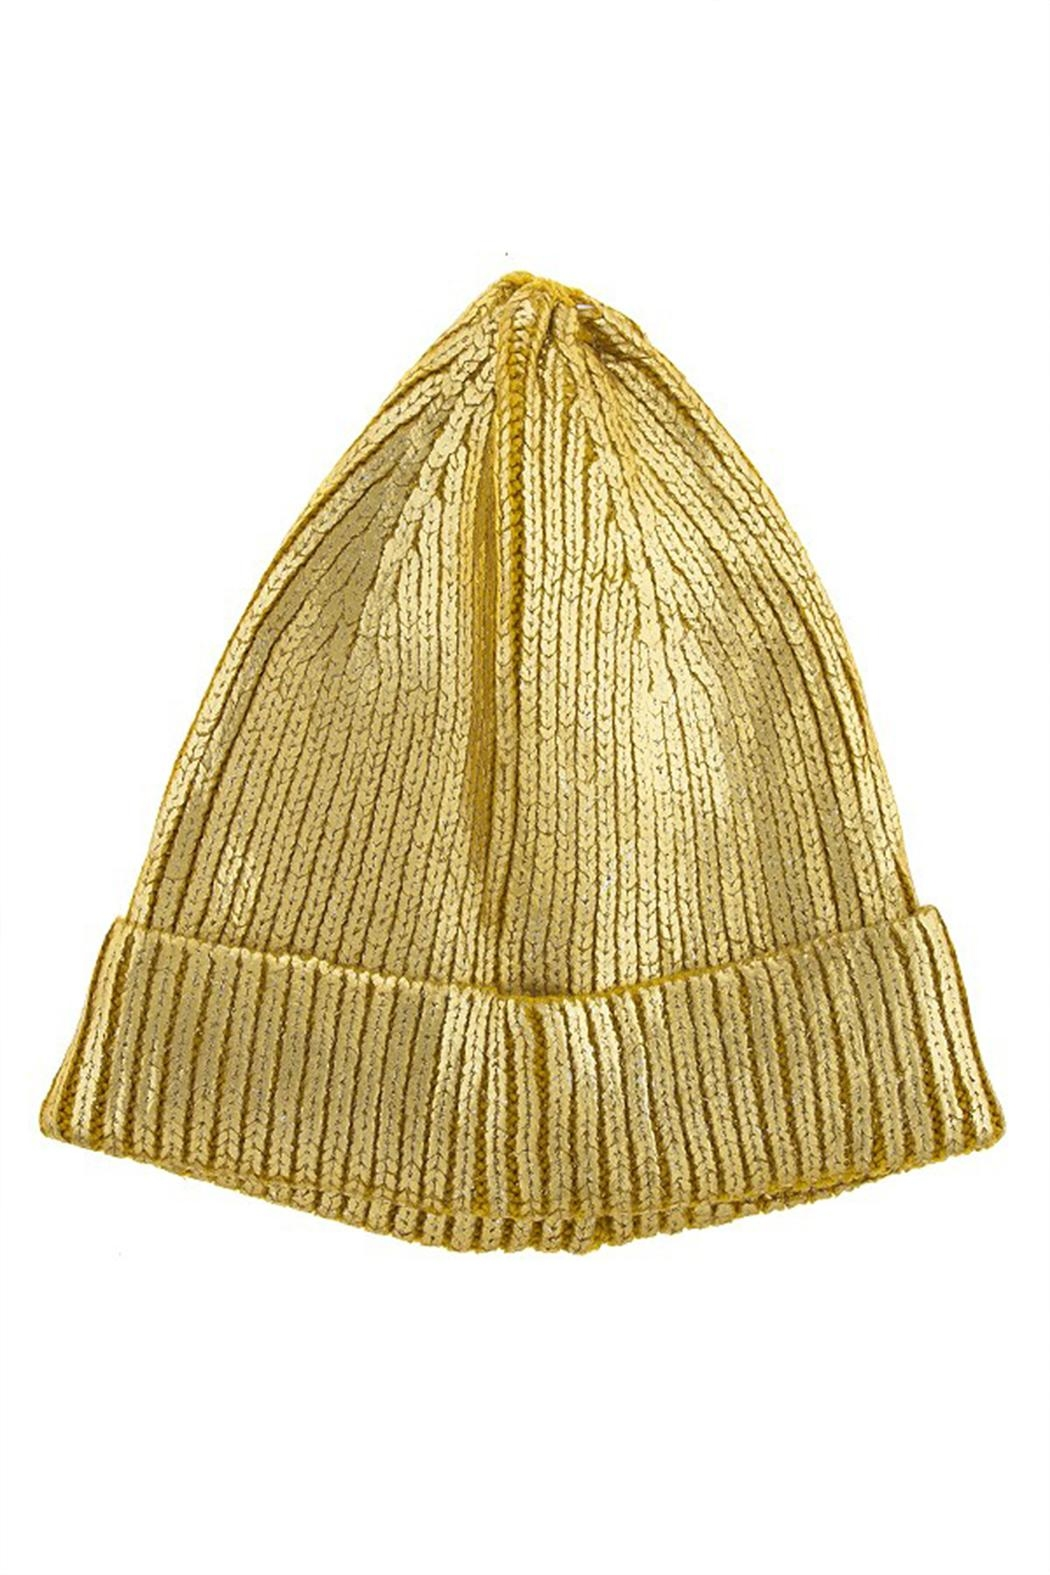 Kimberly C. Metallic Beanie - Main Image